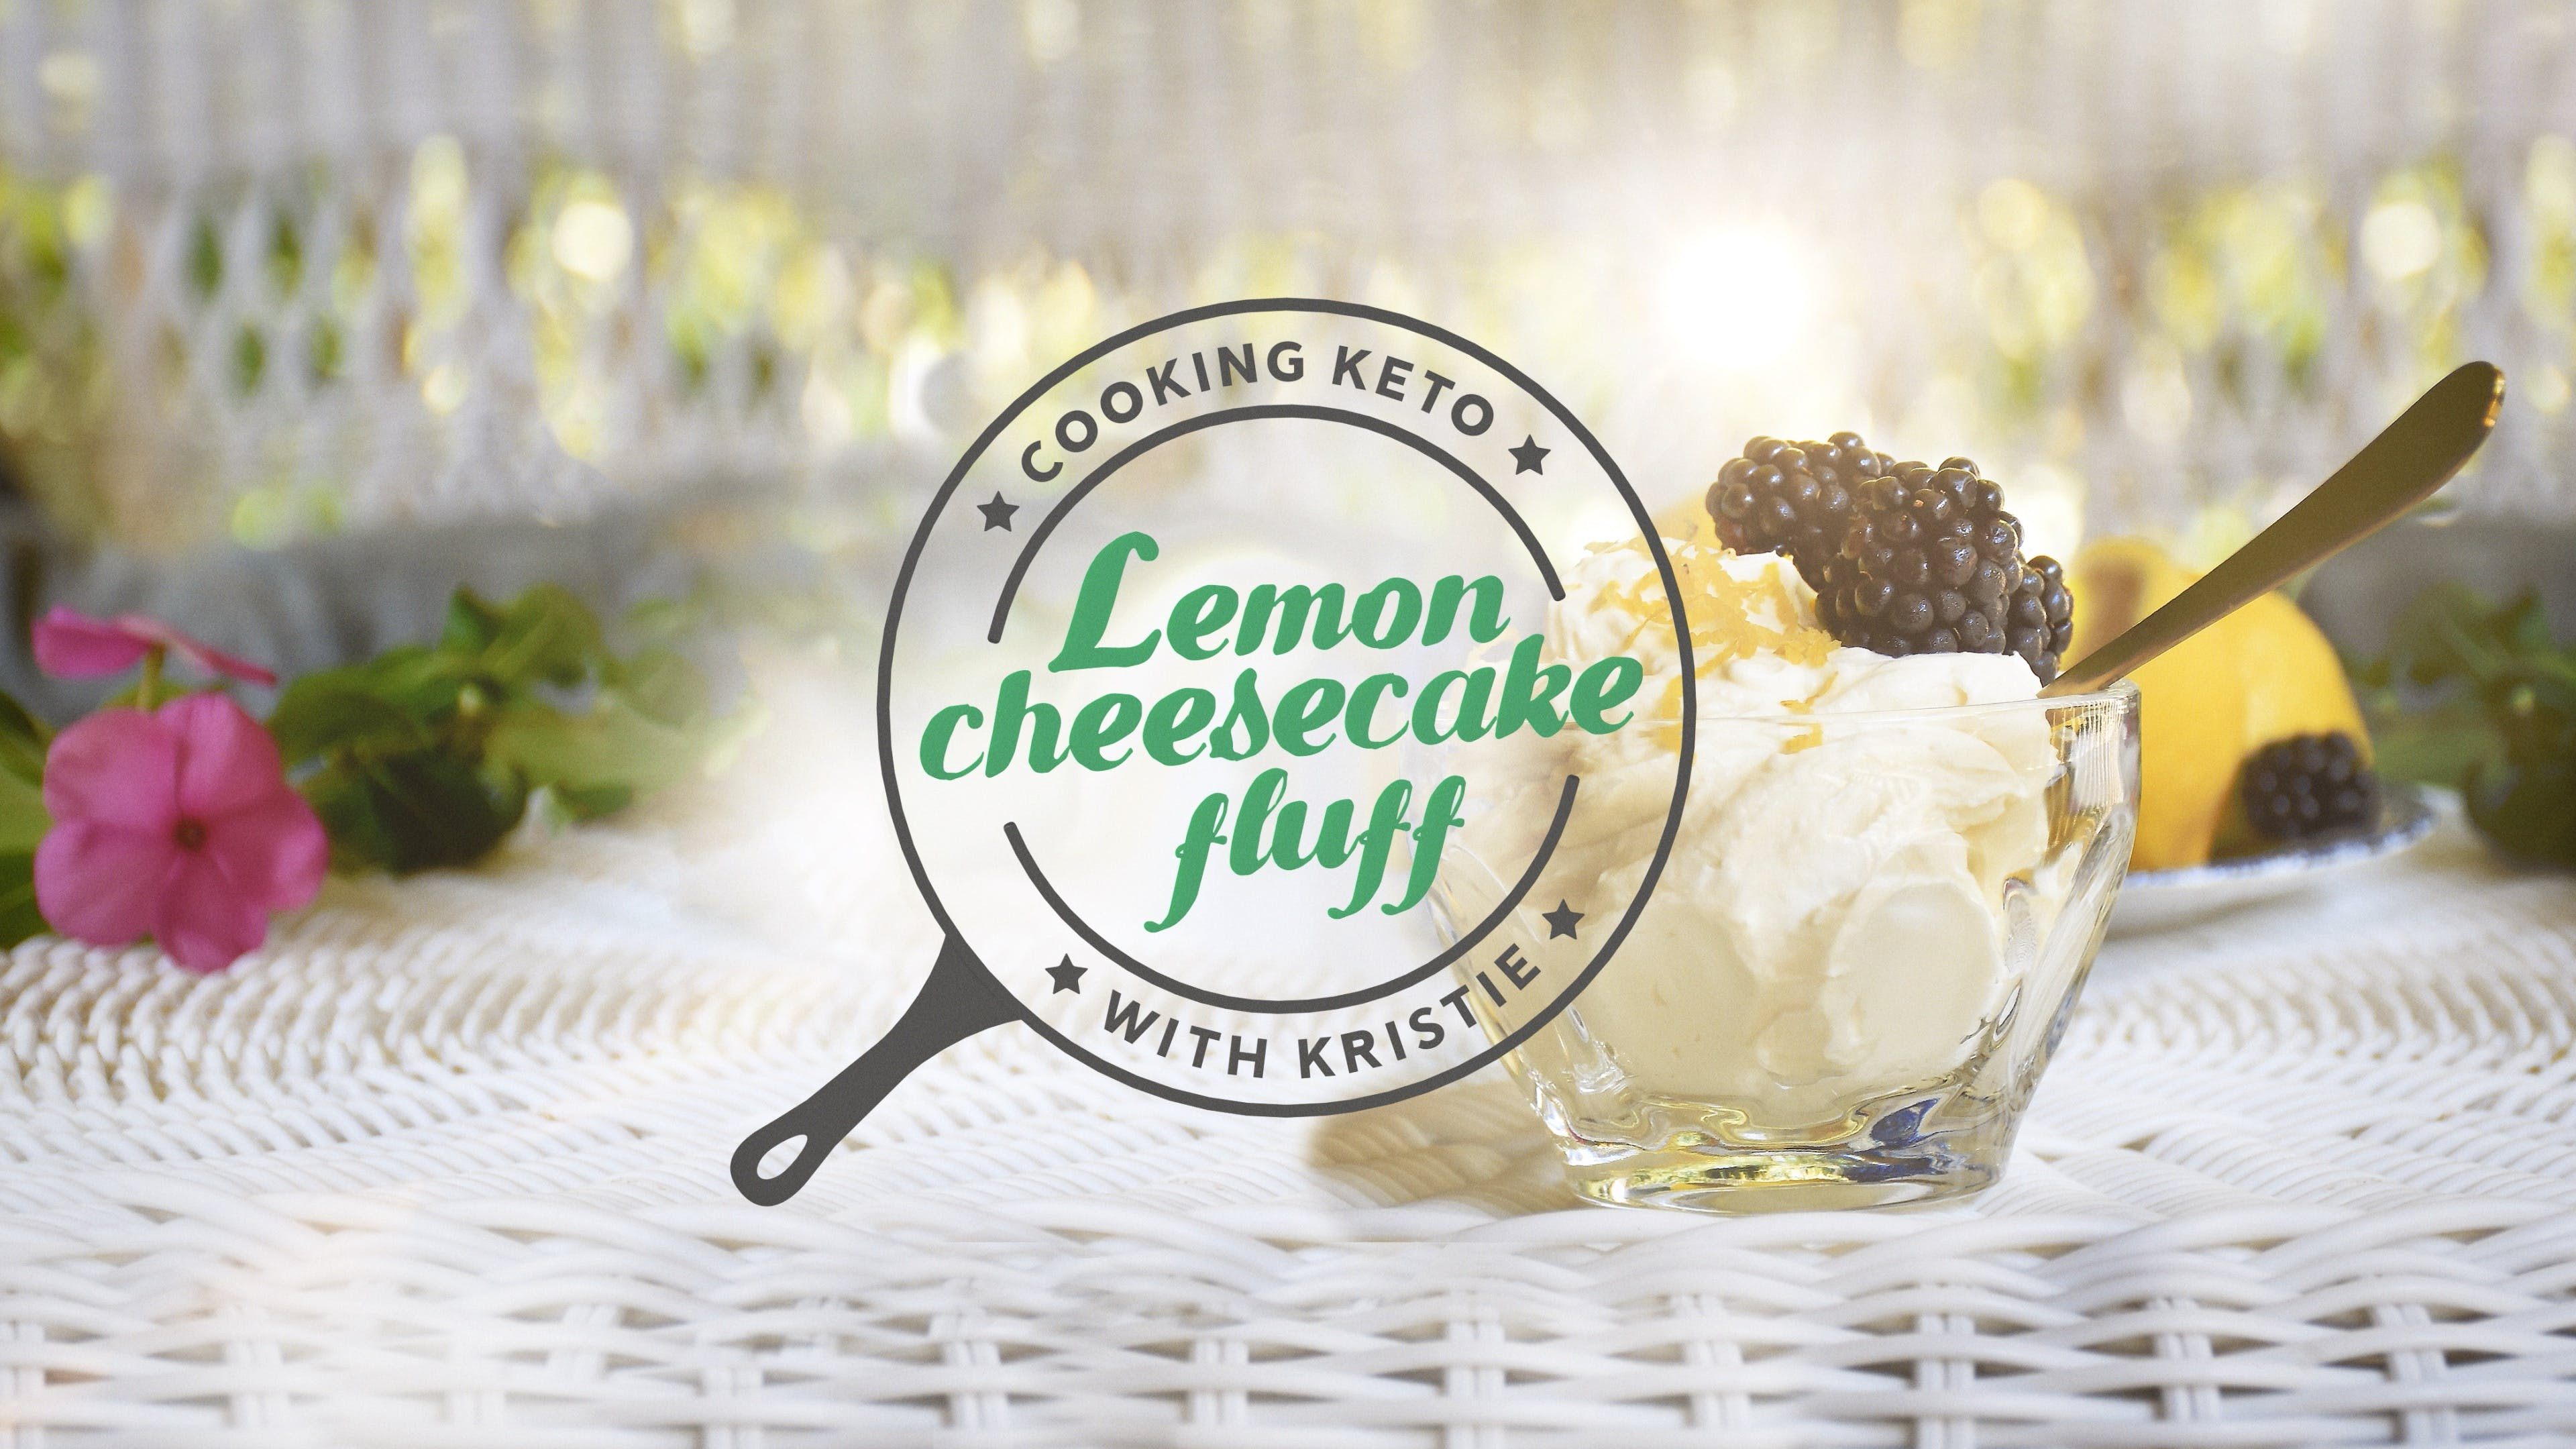 Lemon cheesecake fluff